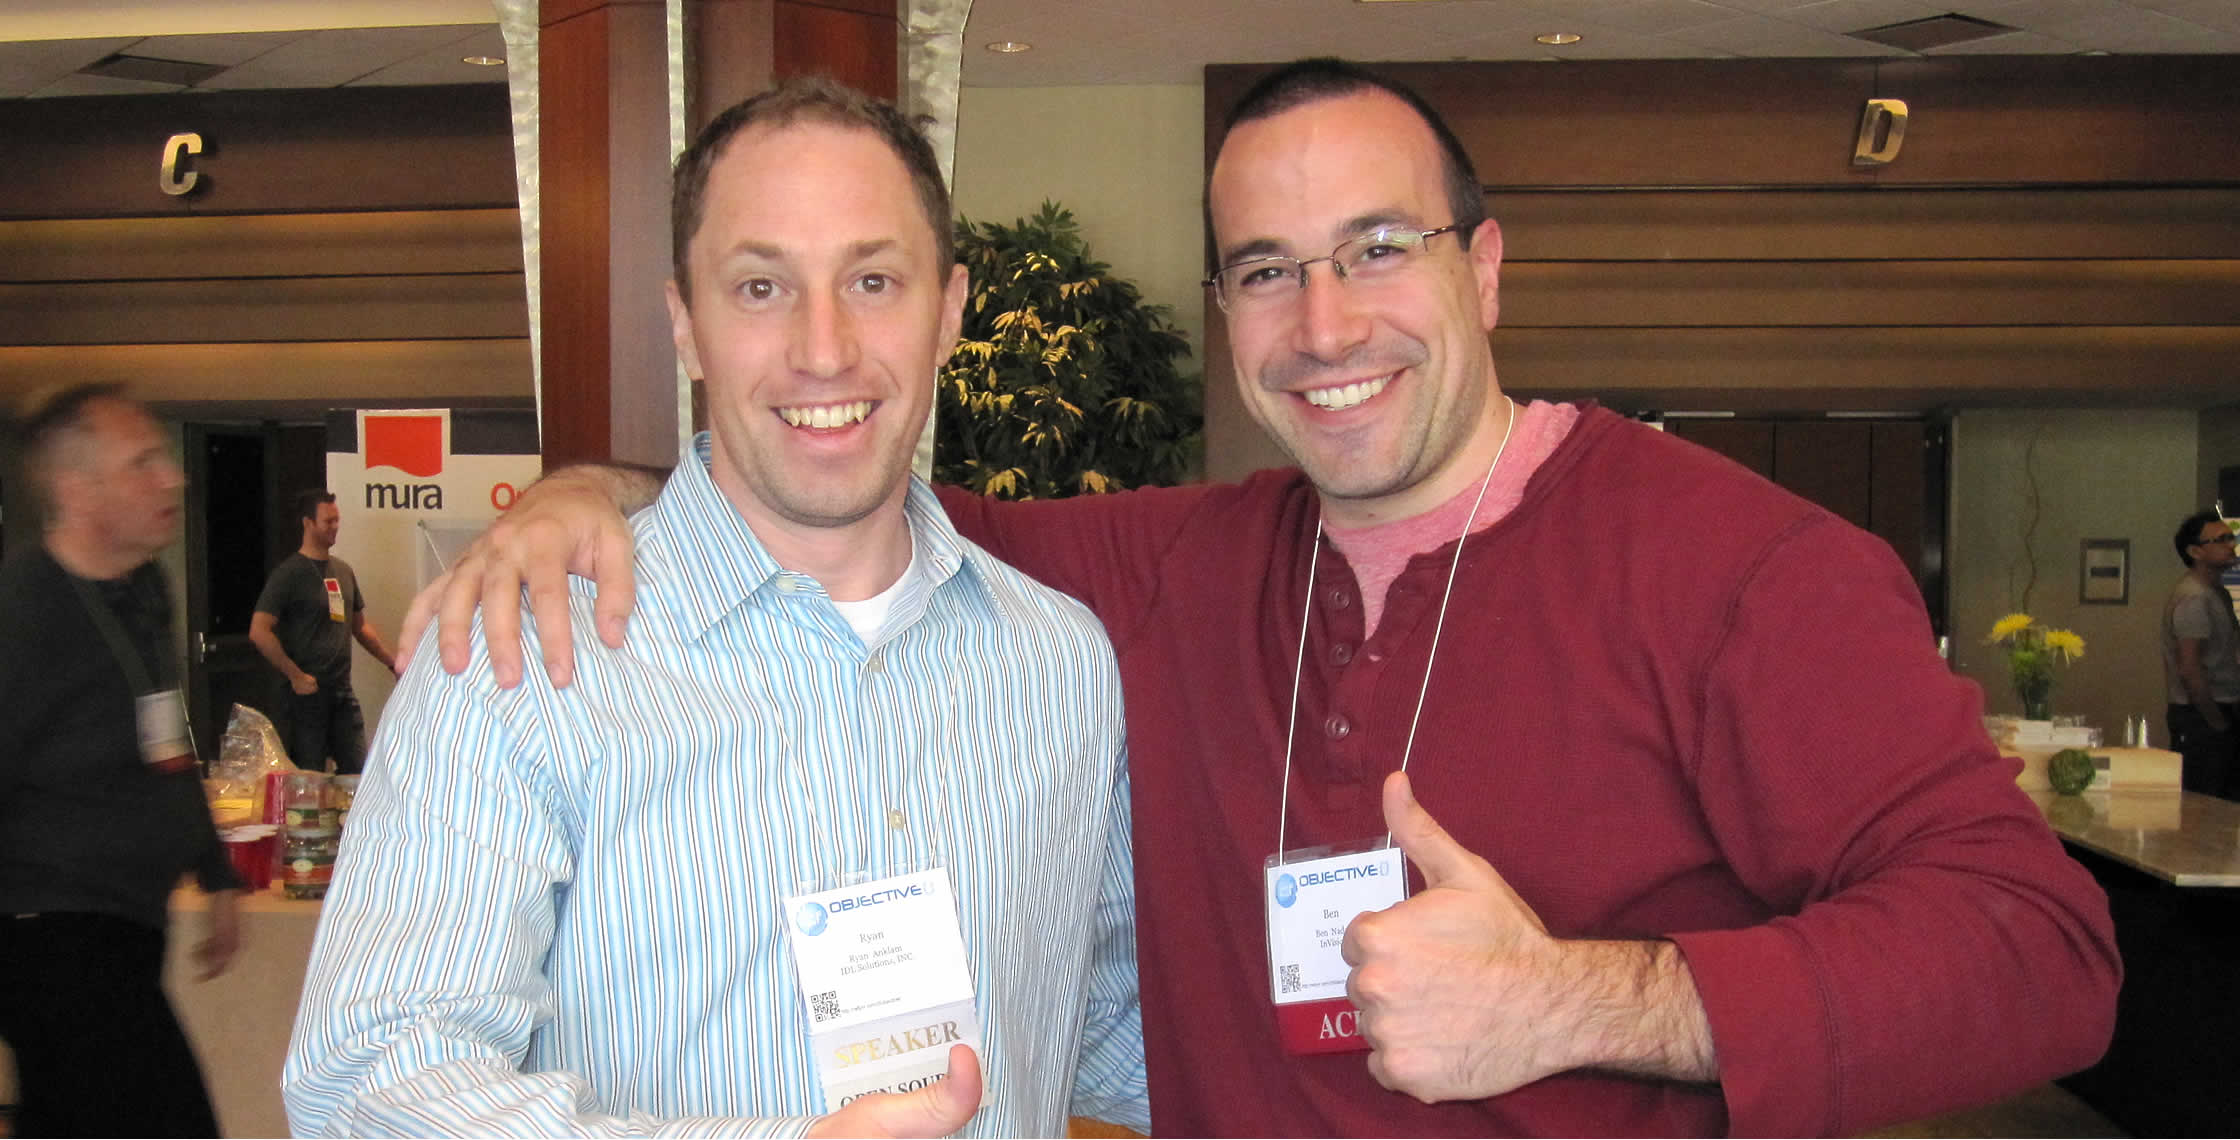 Ben Nadel at cf.Objective() 2012 (Minneapolis, MN) with: Ryan Anklam